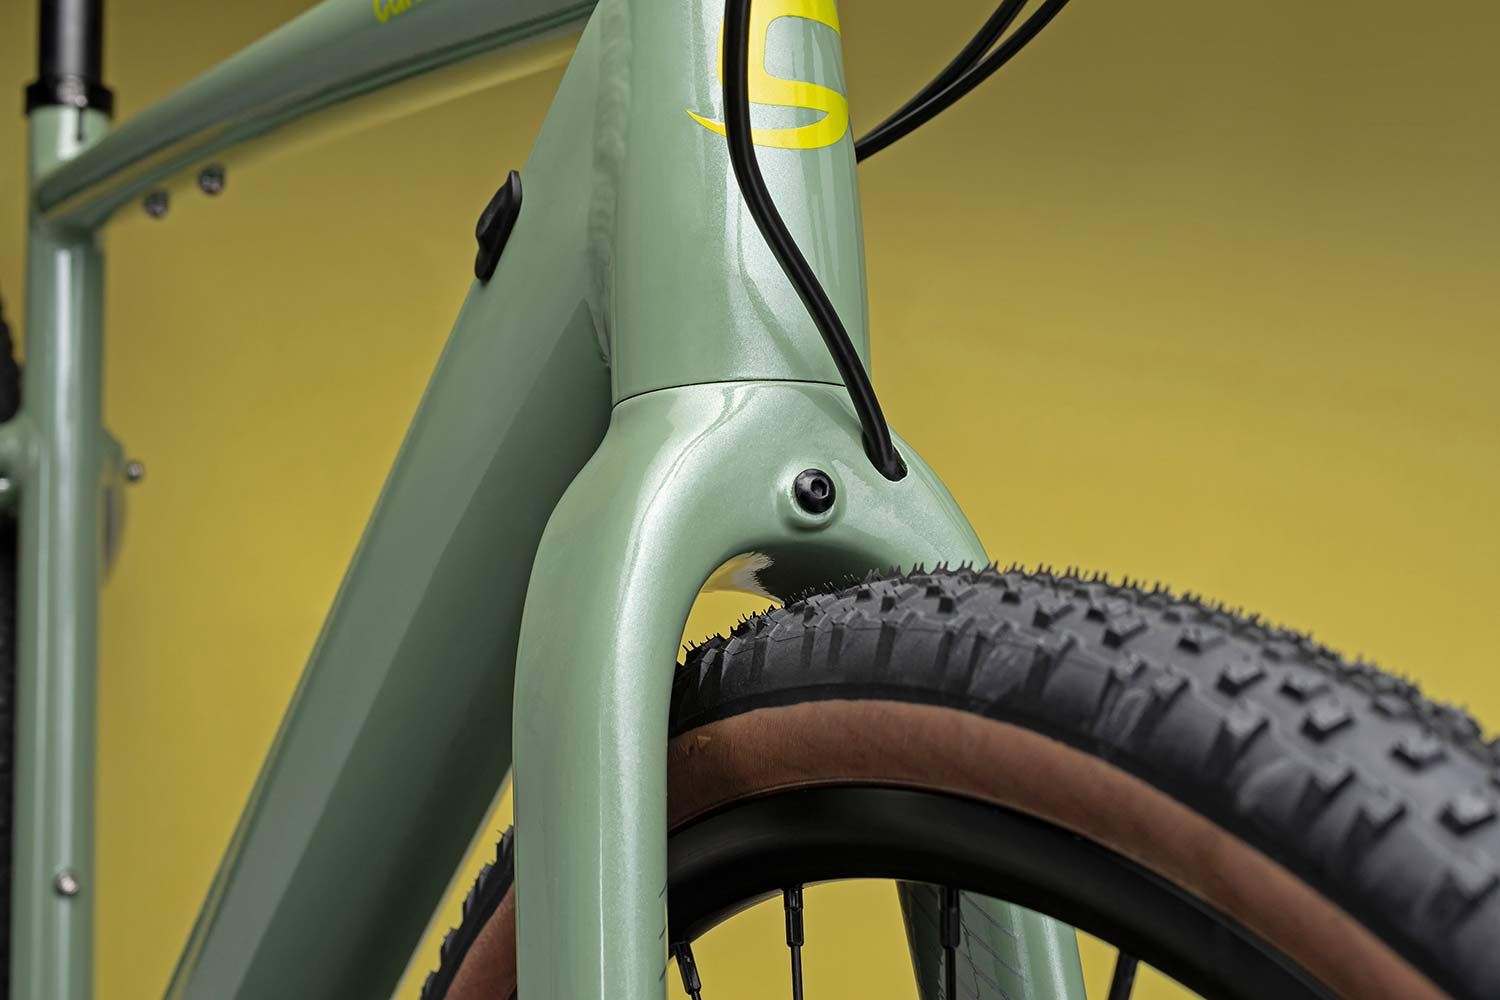 Cannondale Topstone Neo SL lightweight affordable alloy gravel e-bike,42mm tire clearance